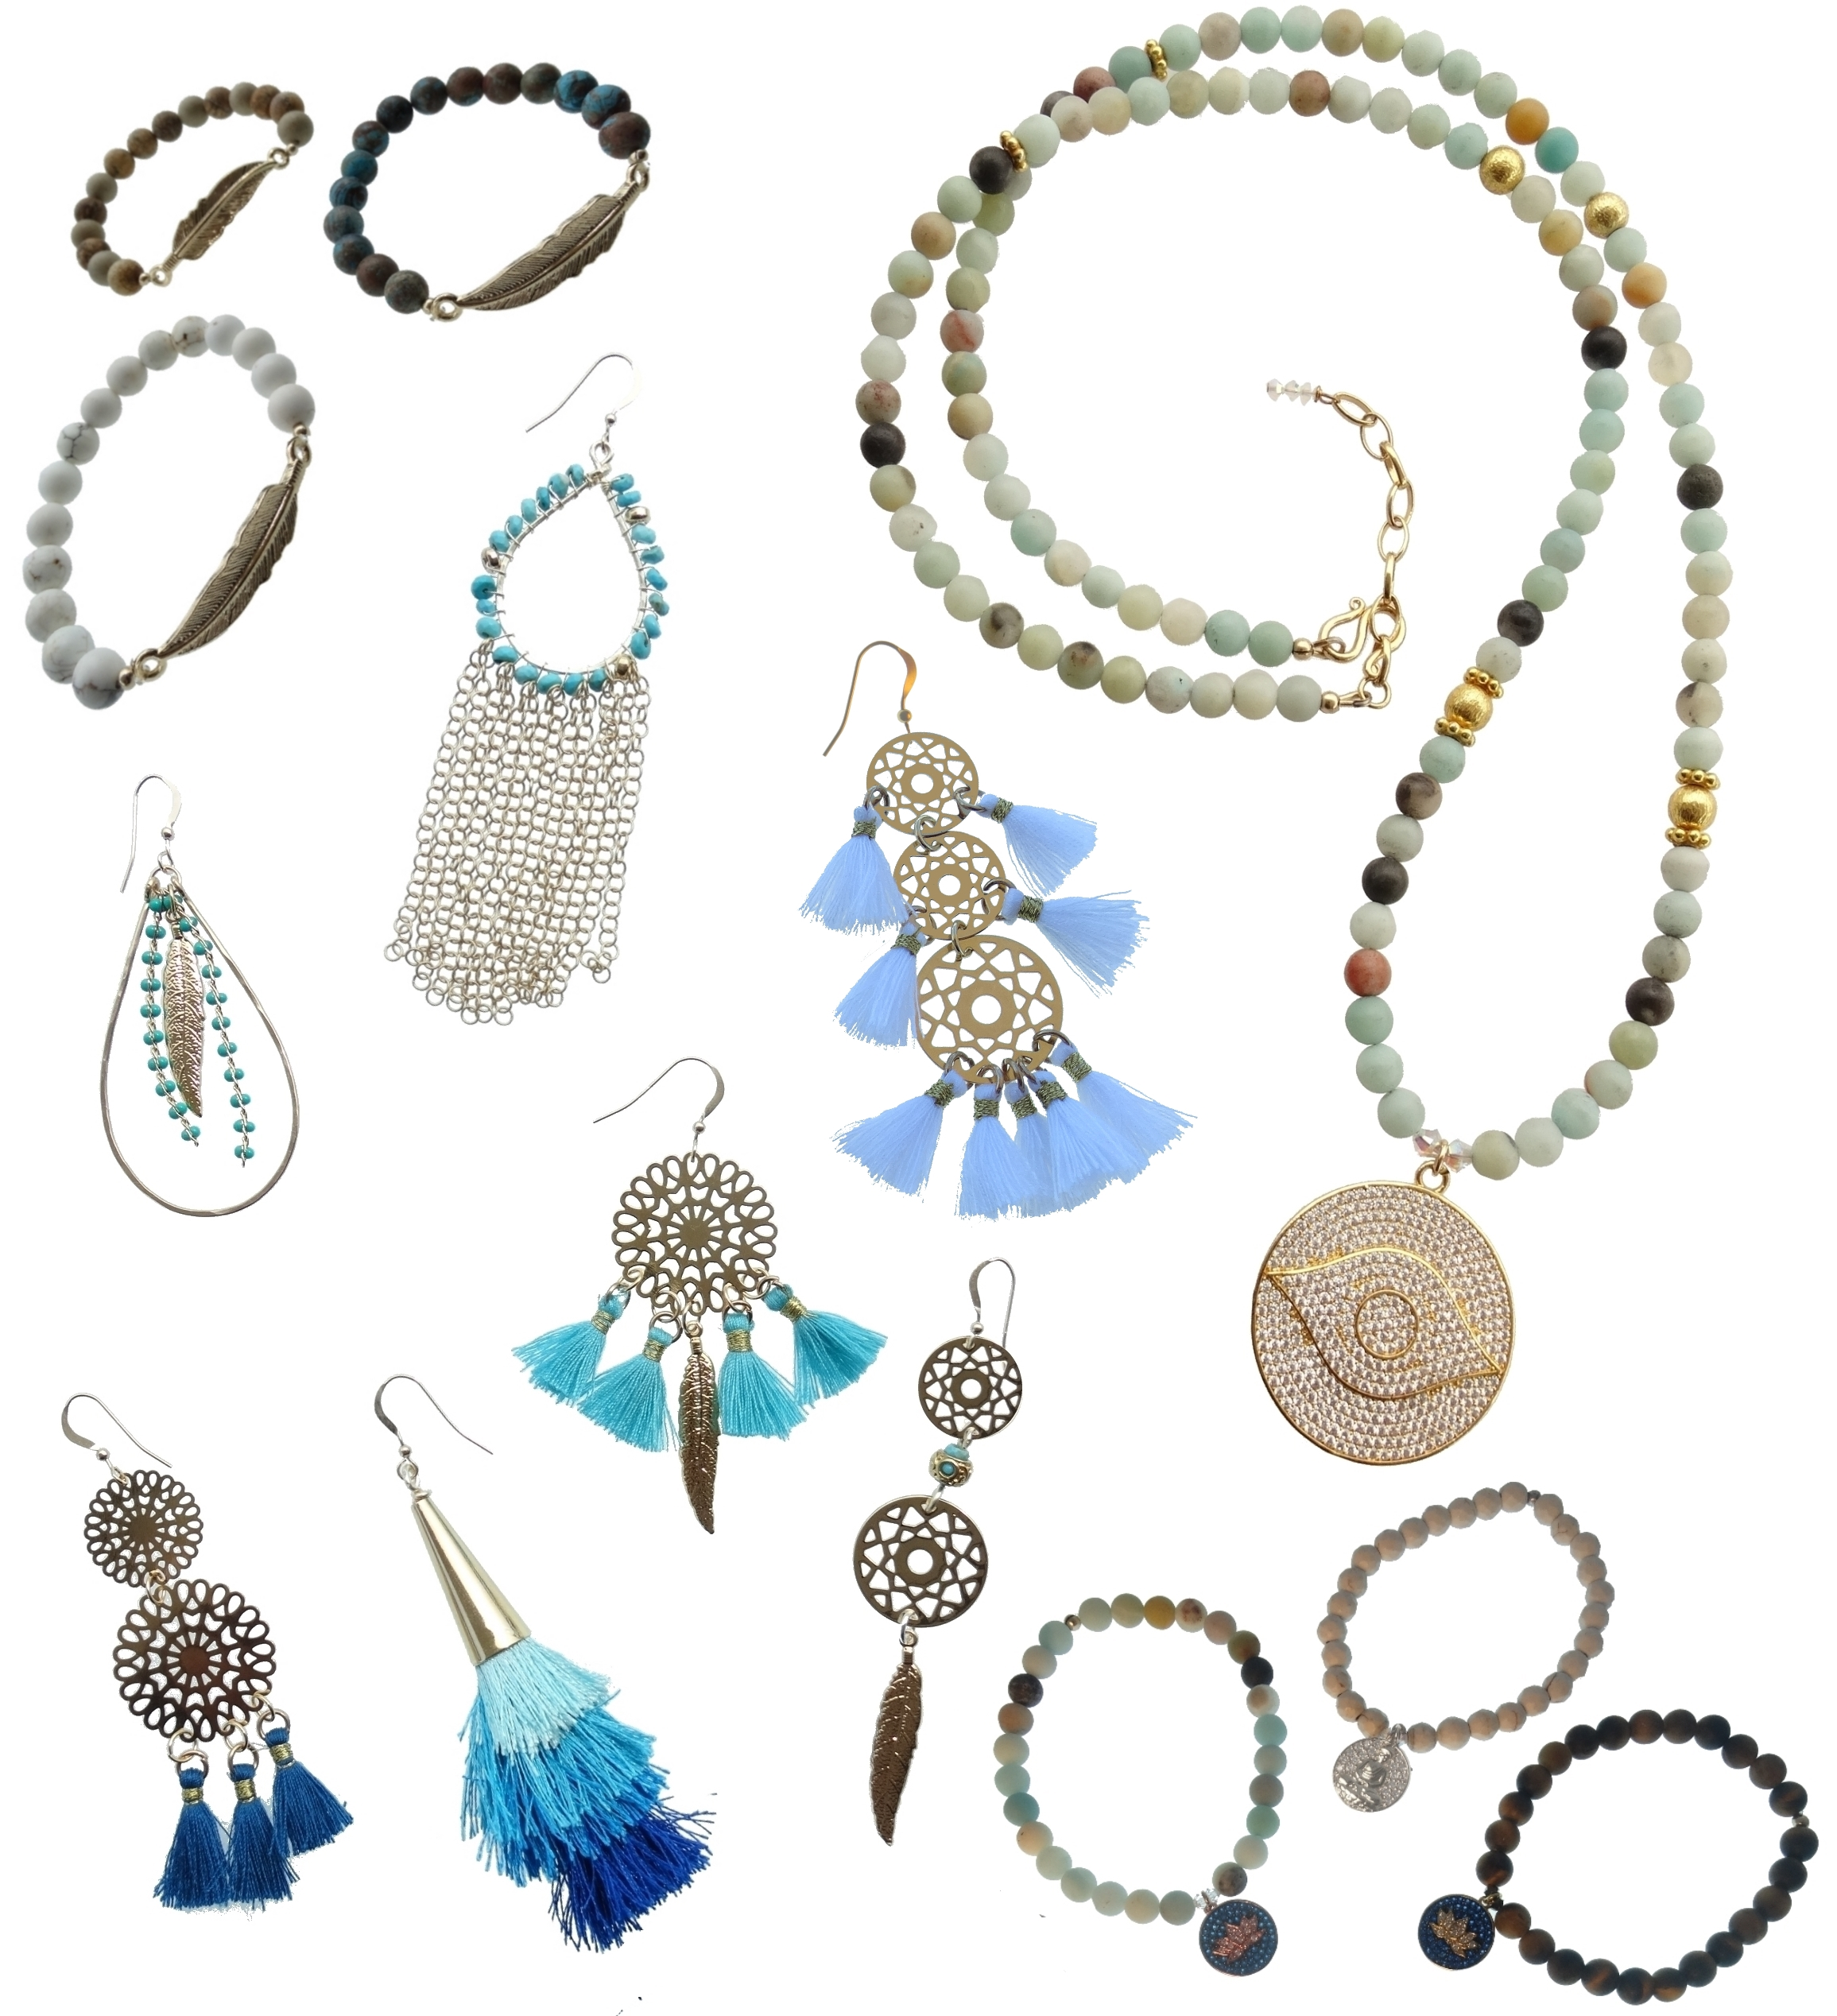 Wholesale Boho Glam Collection - Authentic Stones, Tassels, Mandalas and a bit of Sparkle create our Boho Glam Collection. Always growing so check in often for New Designs.